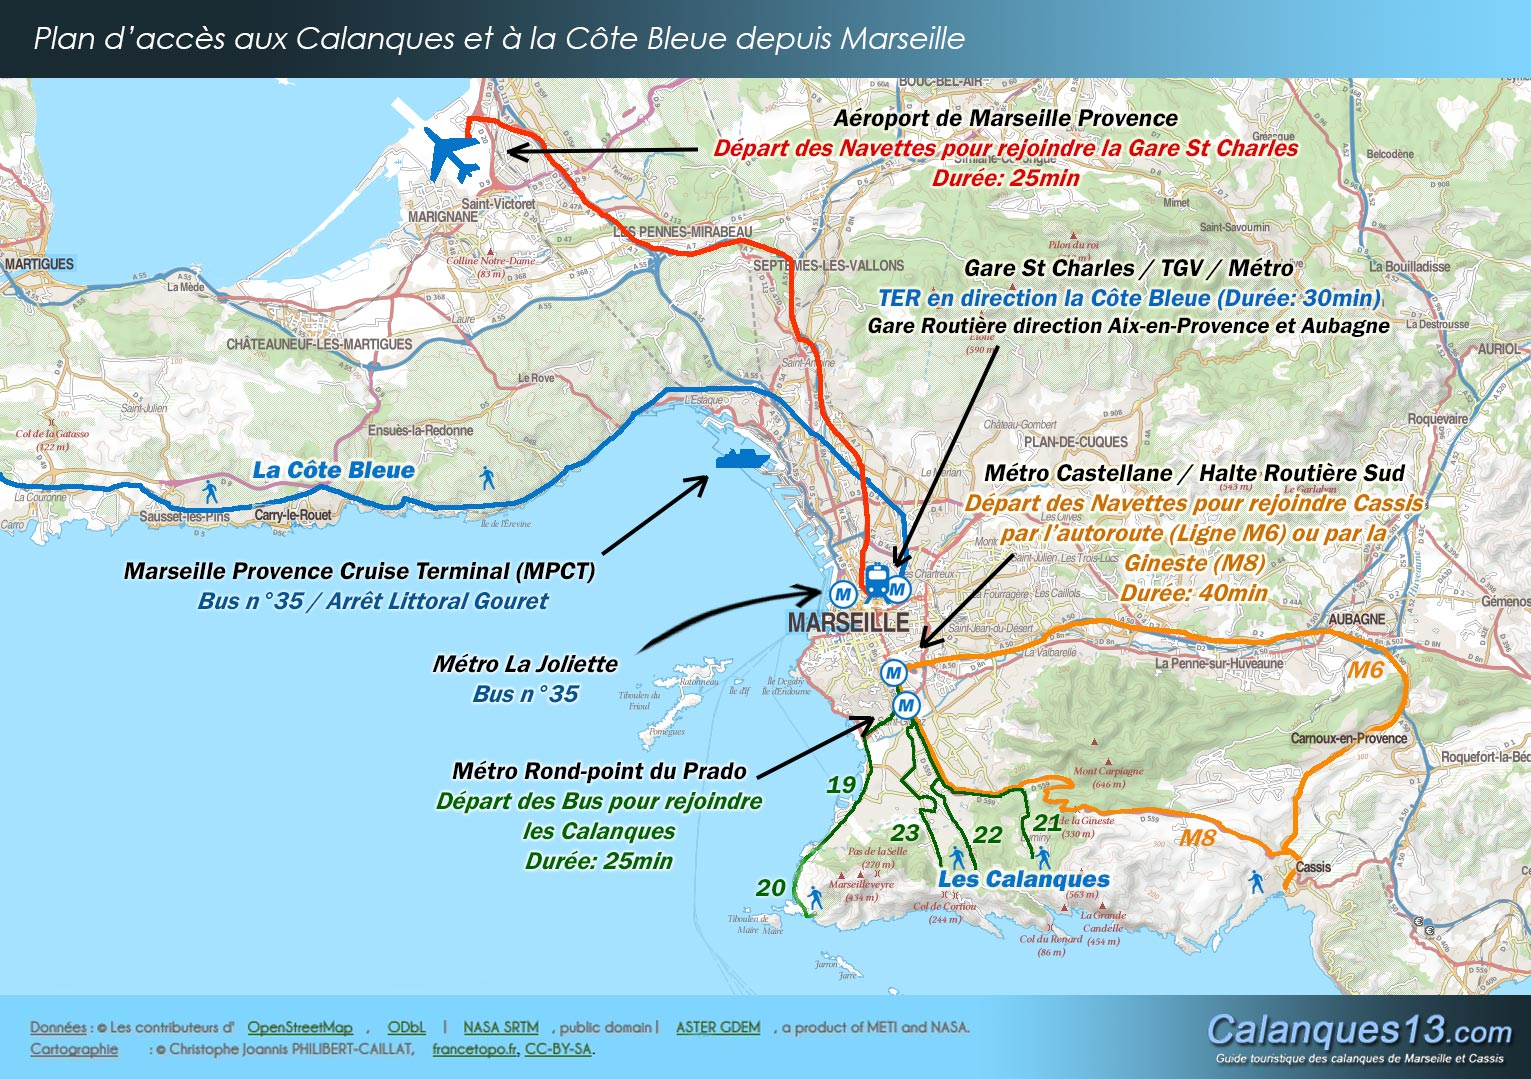 Navette Aubagne Marseille How To Get To The Calanques Itinerary Map Of The Calanques And